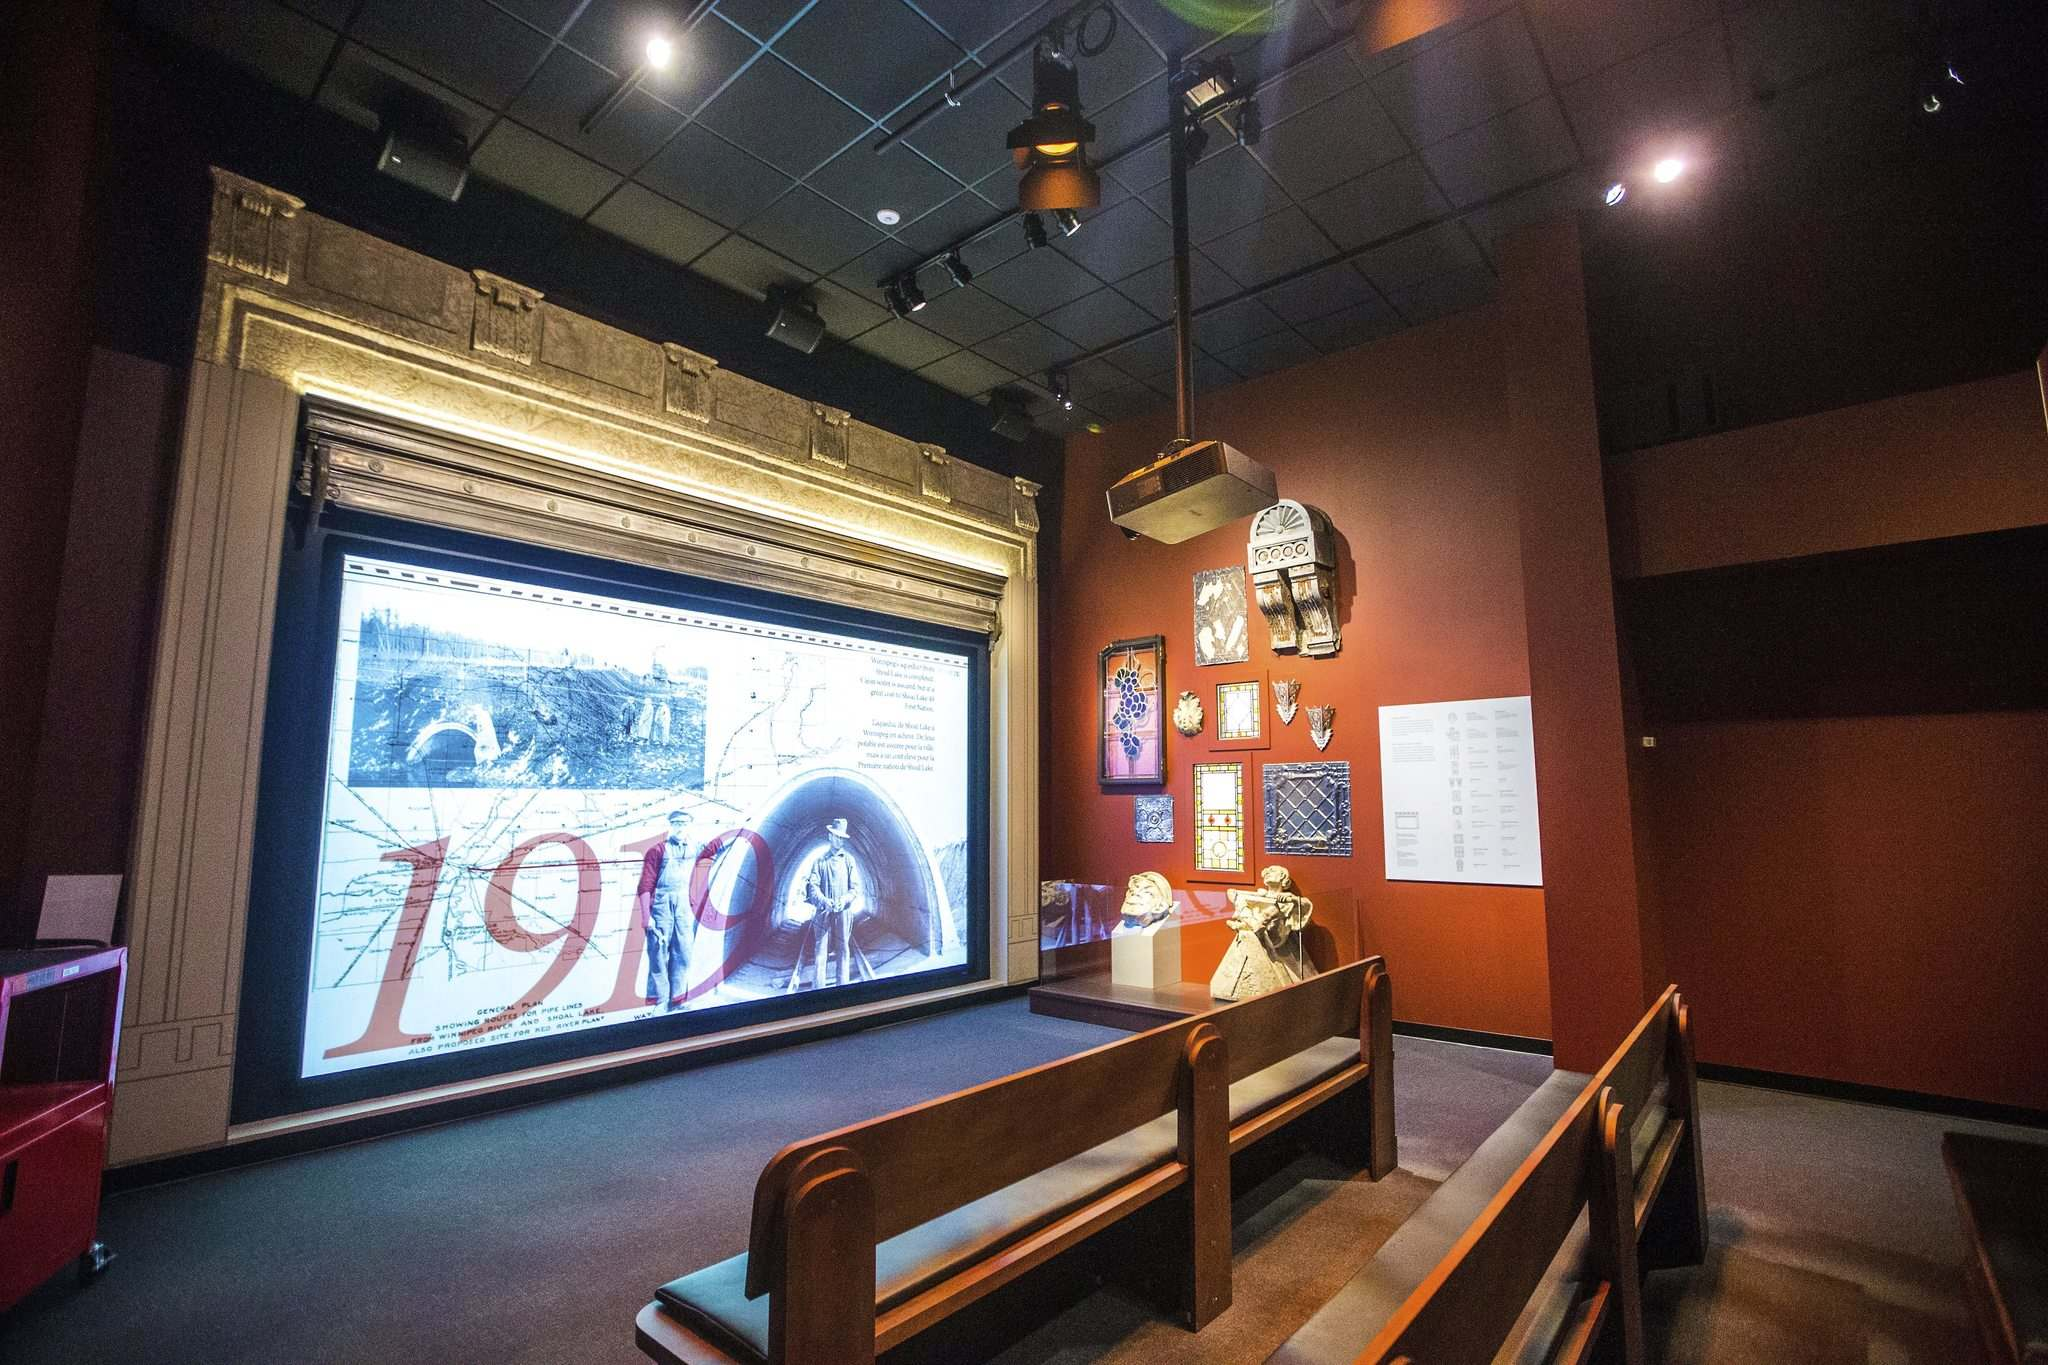 Sawatzky also curated the Winnipeg General Strike exhibit at the museum and thinks the centenary of that 1919 event has sparked new interest in the history of our city. (Mikaela MacKenzie / Winnipeg Free Press)